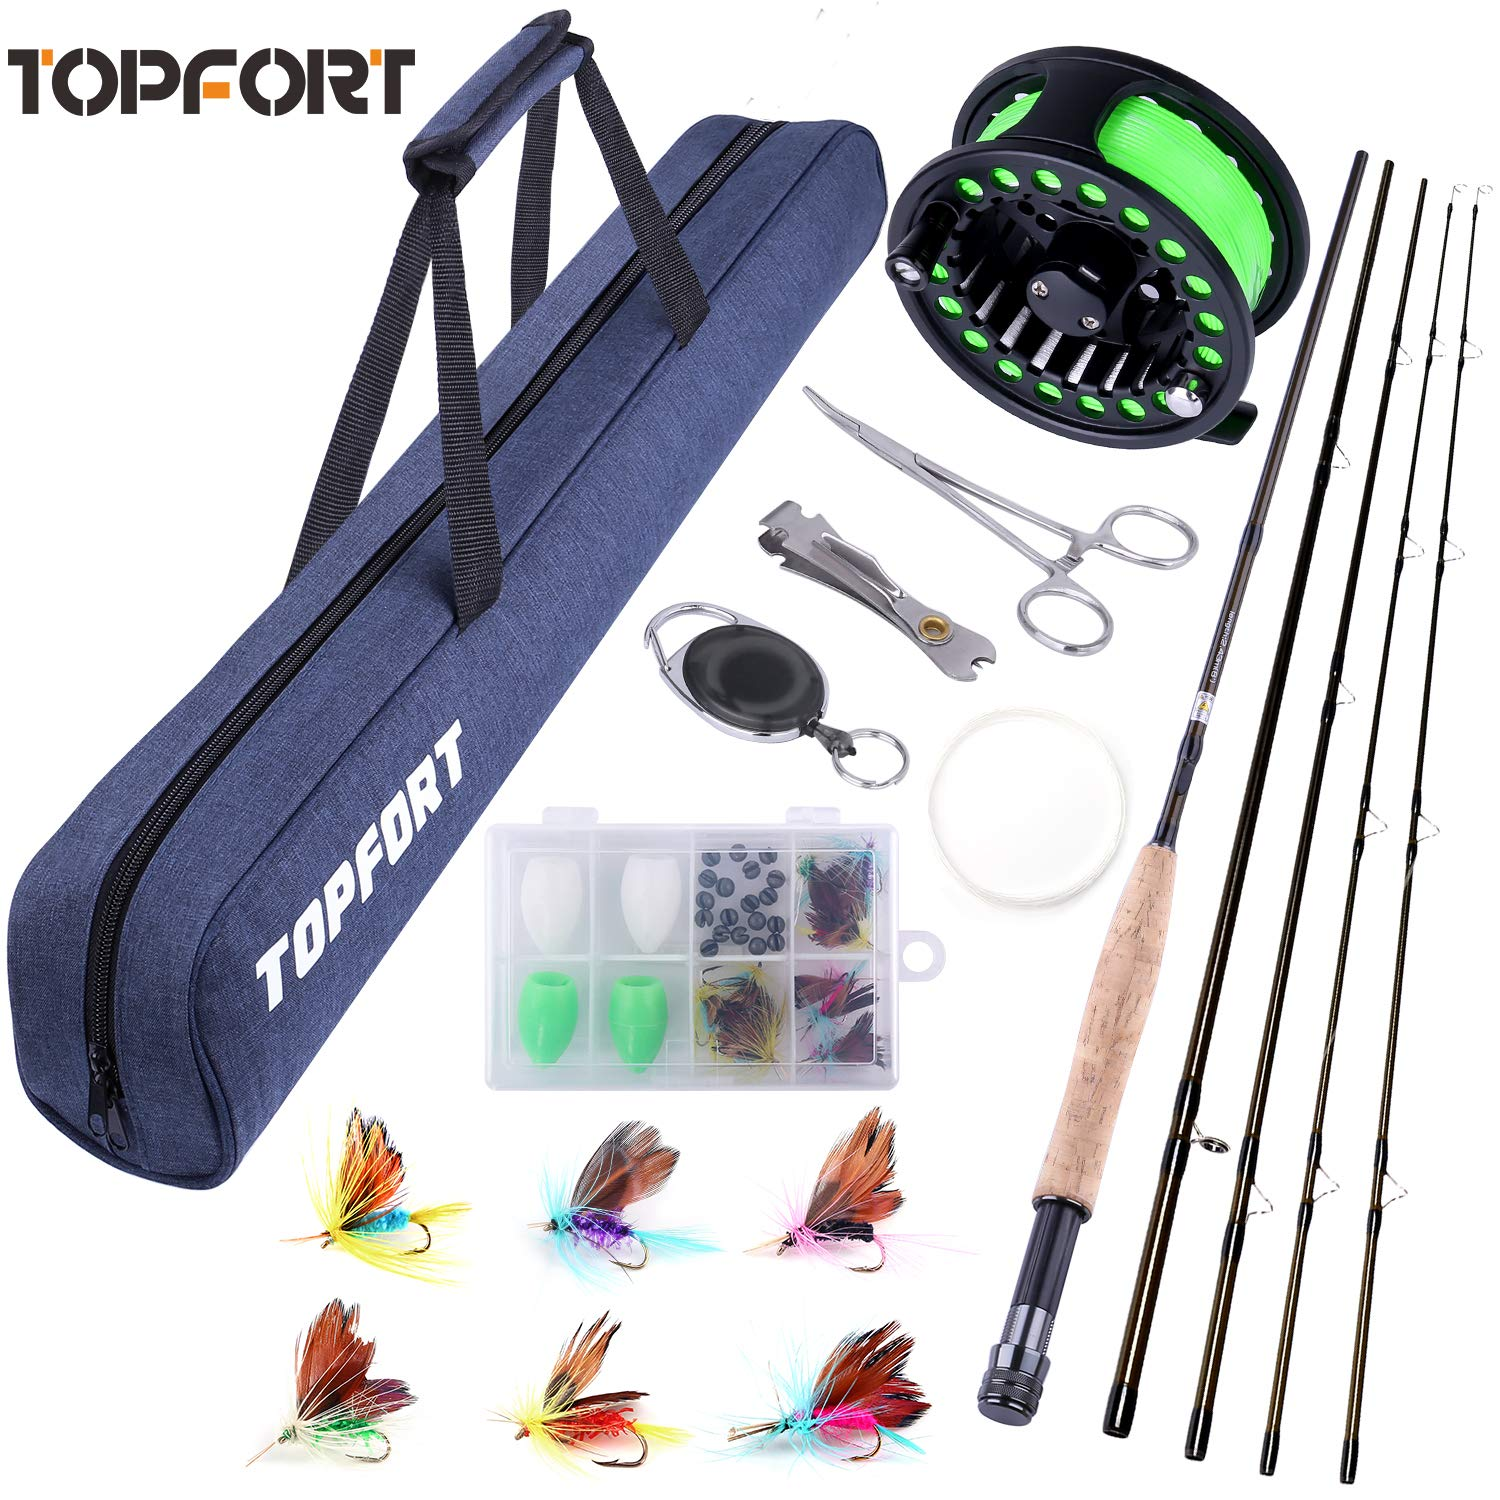 TOPFORT Fly Fishing Rod and Reel Combo, 4 Piece Lightweight Ultra-Portable Graphite Fly Rod 5 6 Complete Starter Package with Carrier Bag